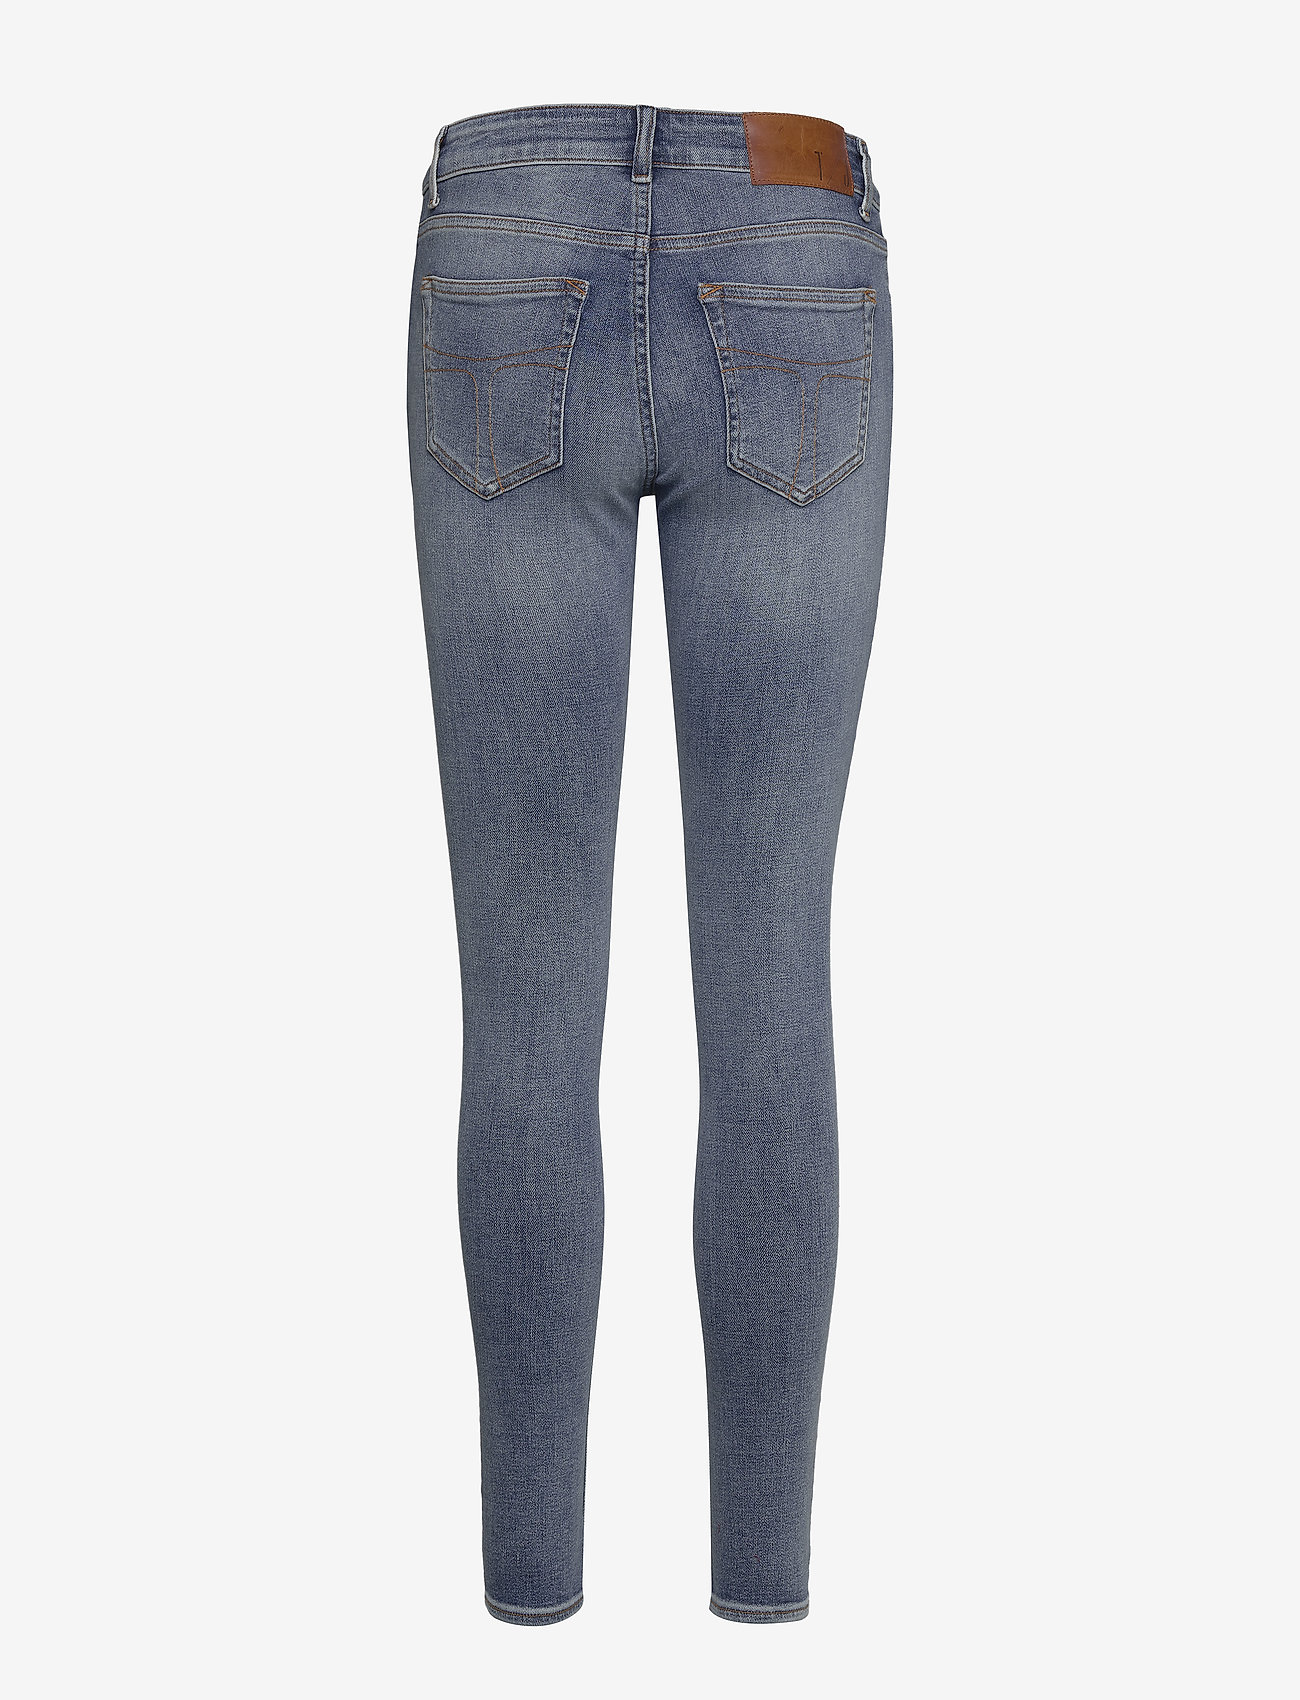 Tiger of Sweden Jeans - SLIGHT - skinny farkut - light blue